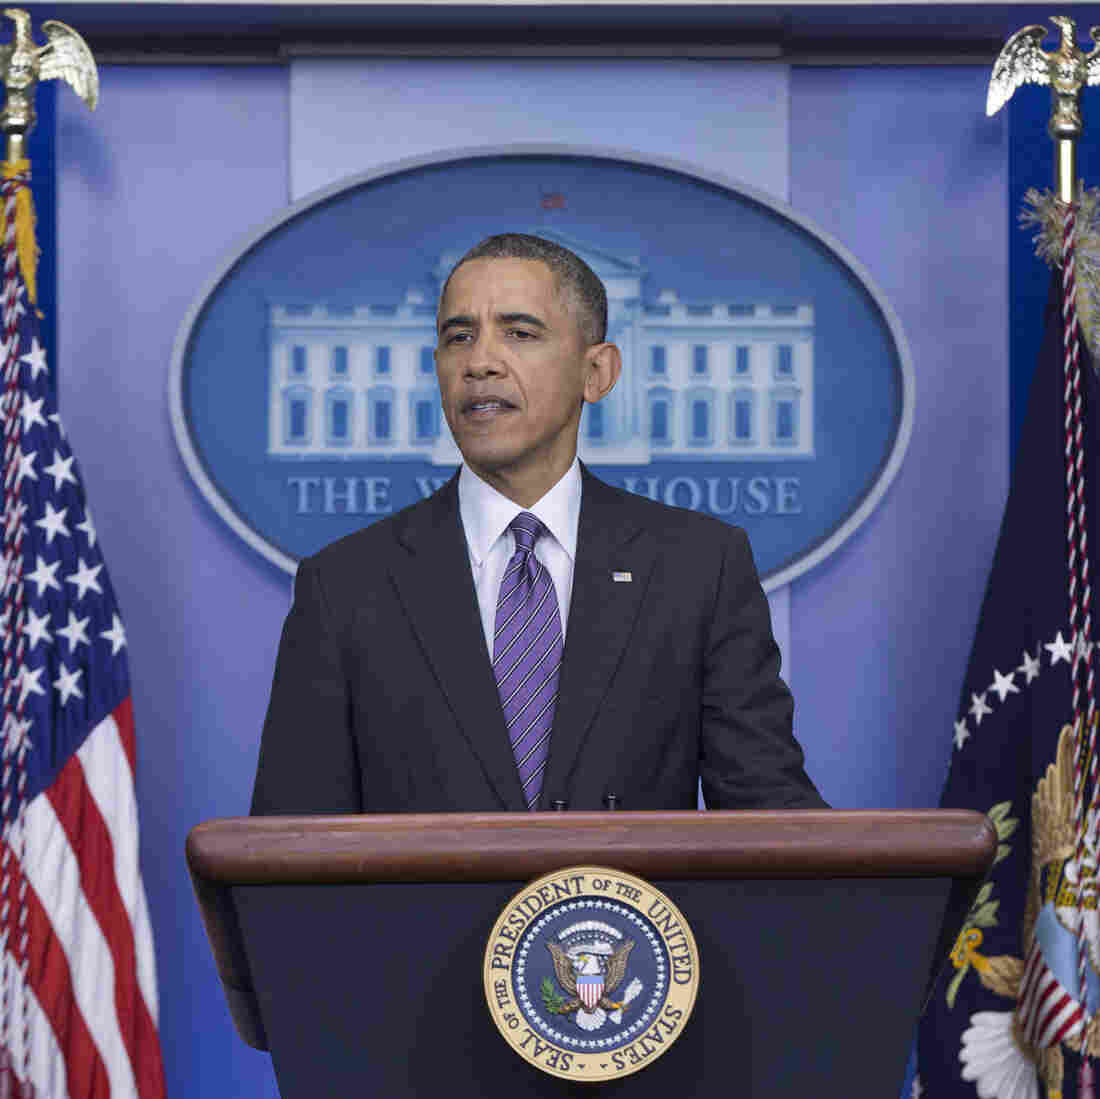 Obama: Affordable Care Act Enrollment Hits 8 Million